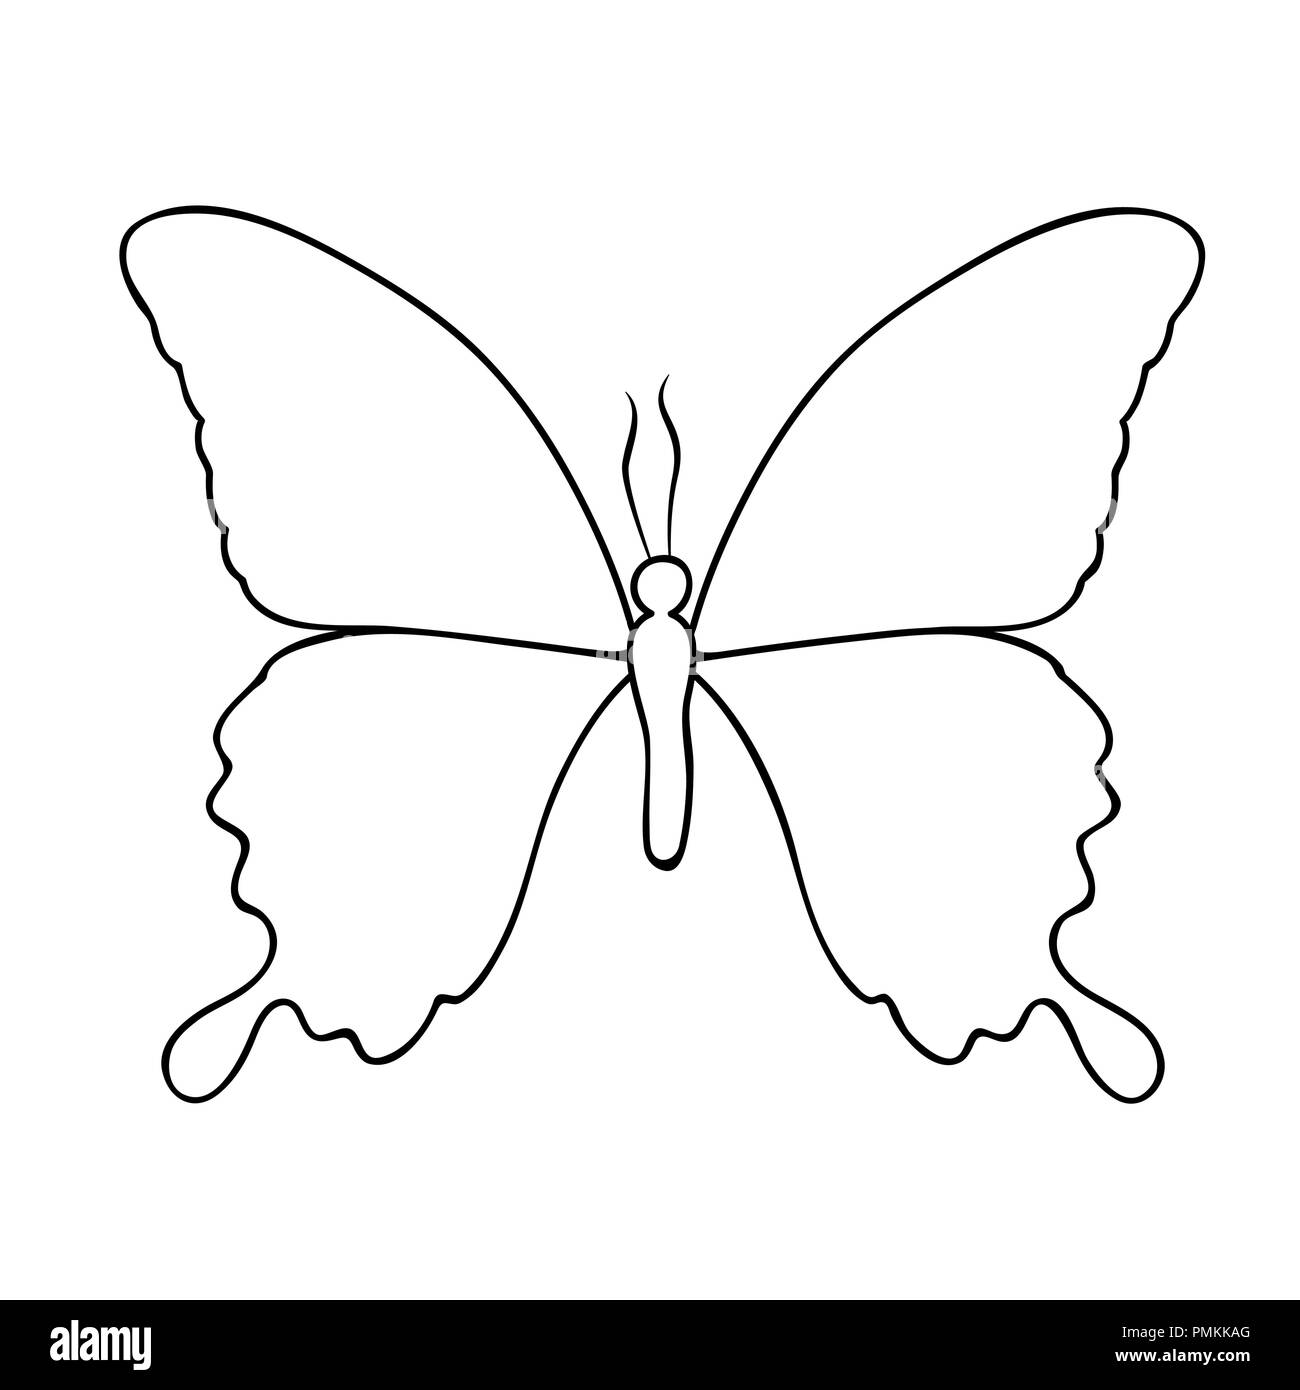 Butterfly line drawing isolated on a white background vector illustration eps10